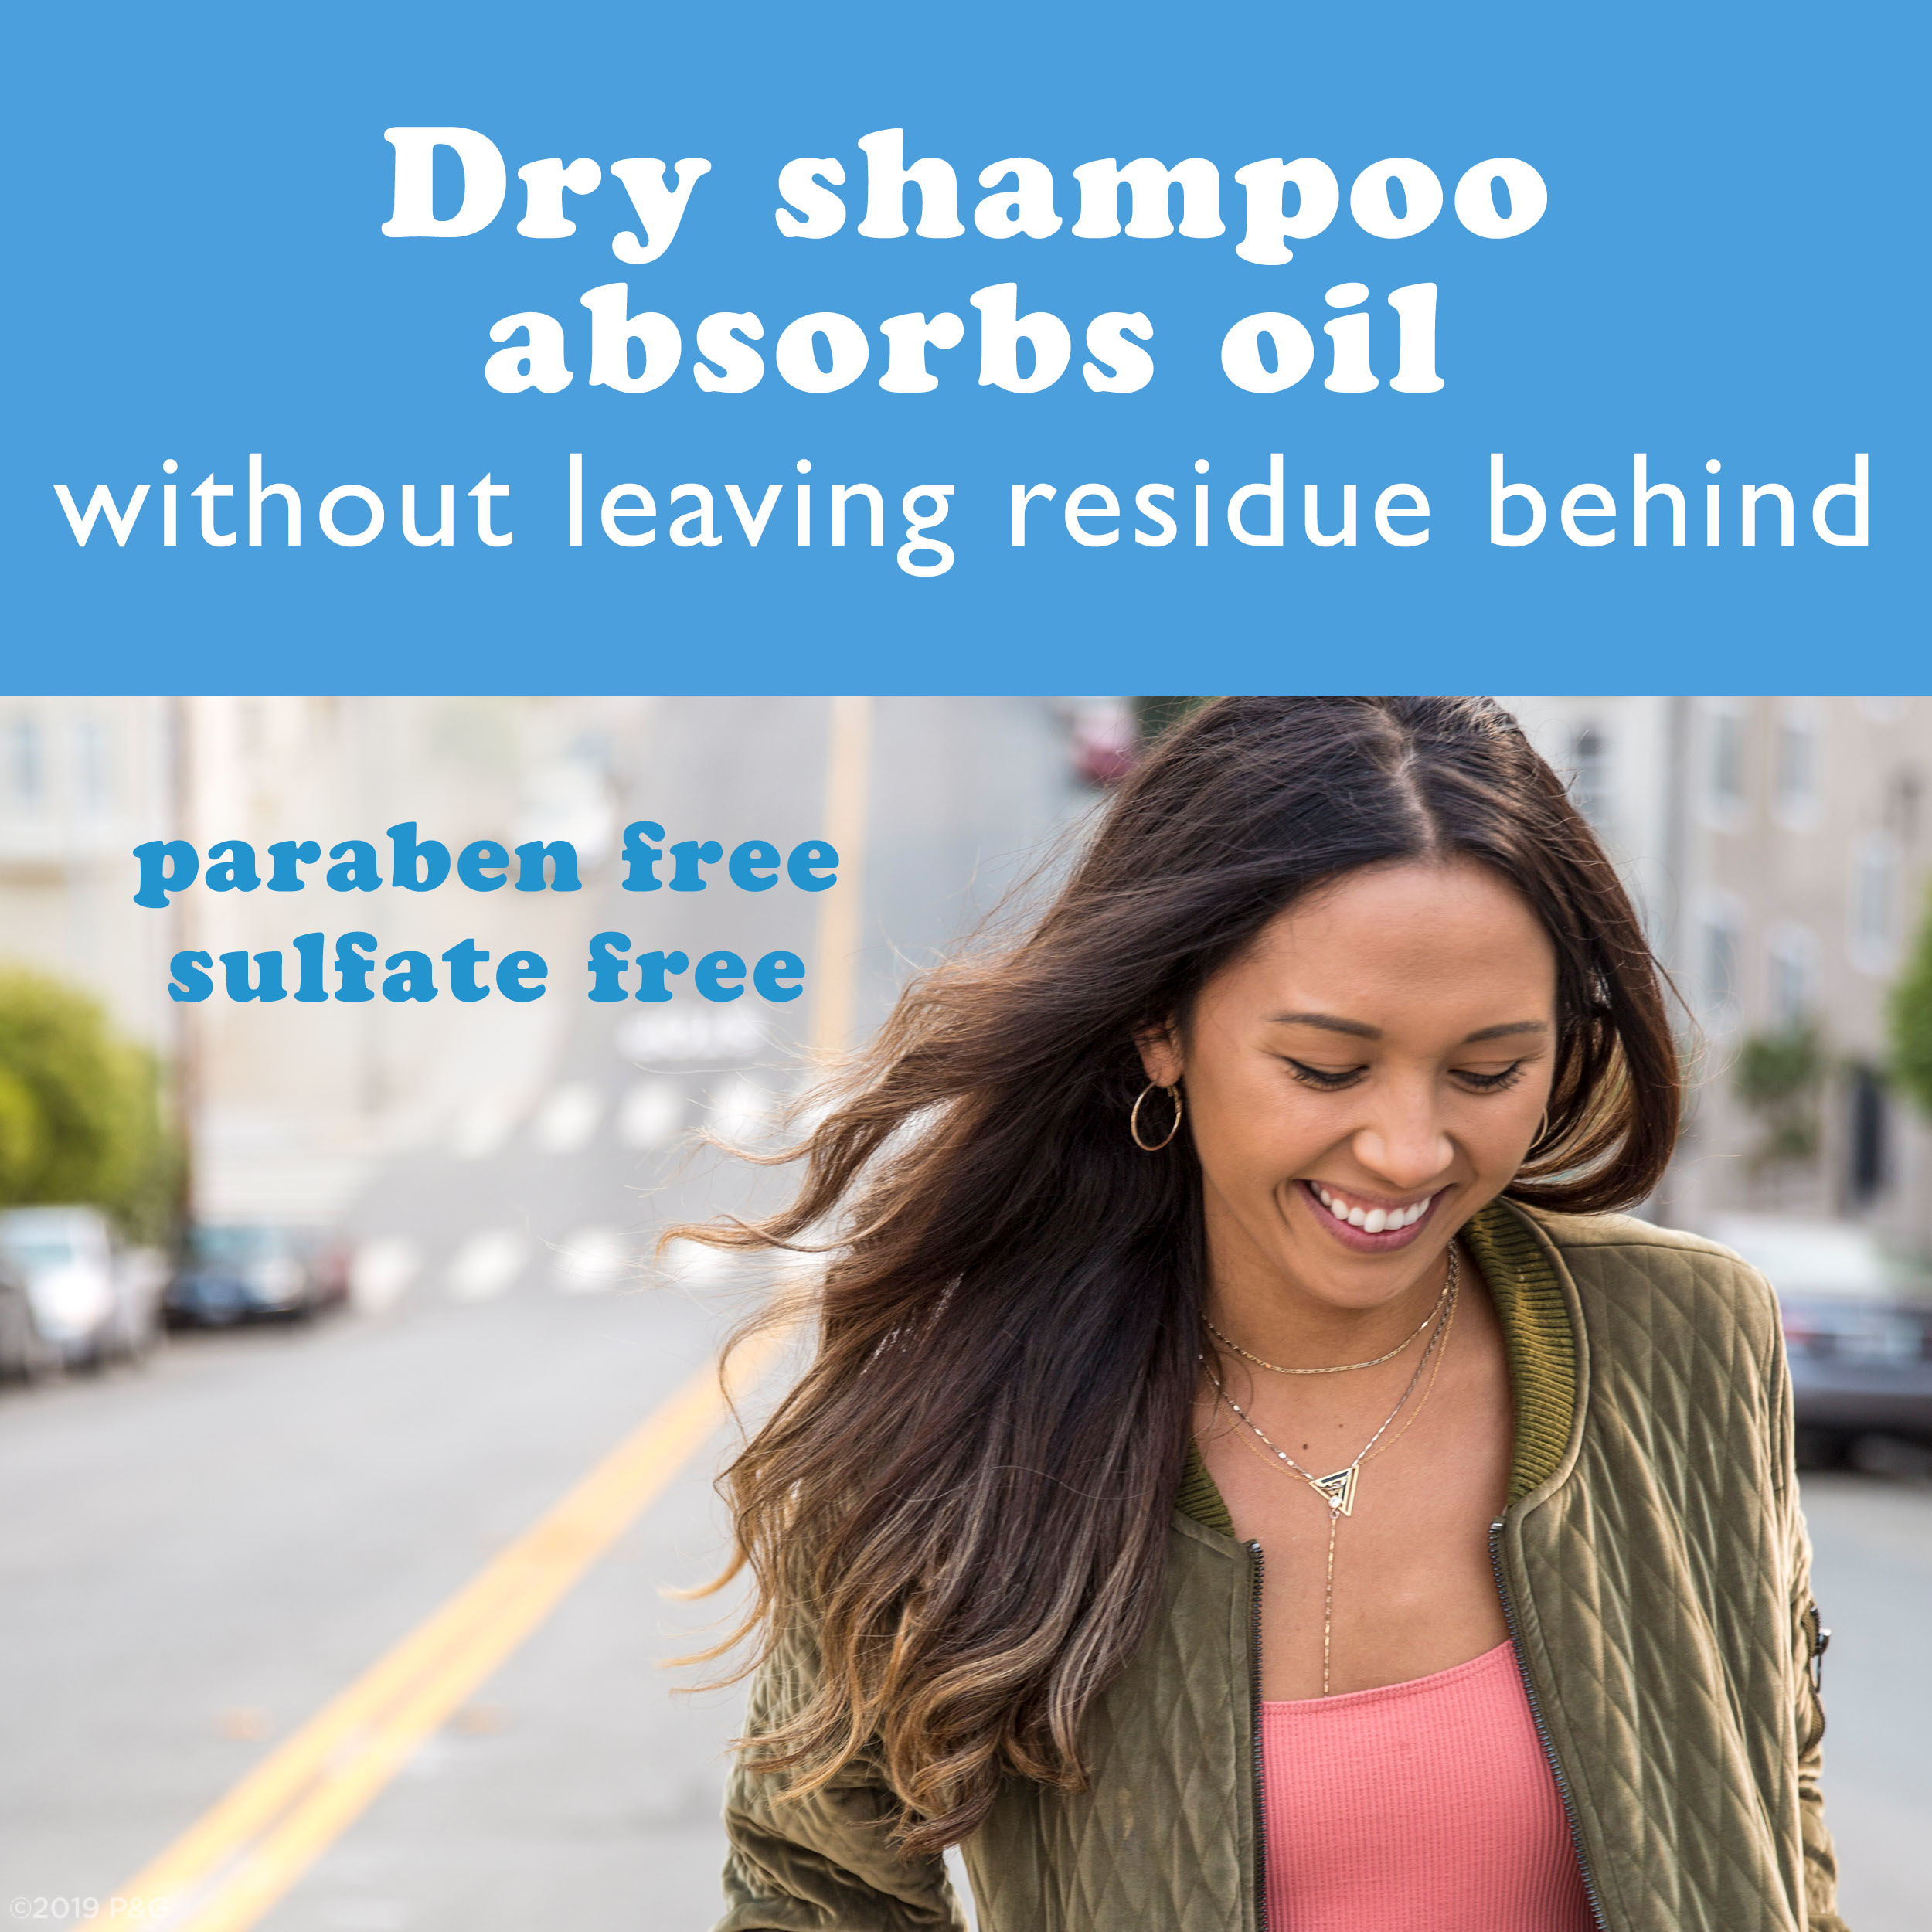 Dry Shampoo Absorbs Oil without leaving residue behind paraben and sulfate free.